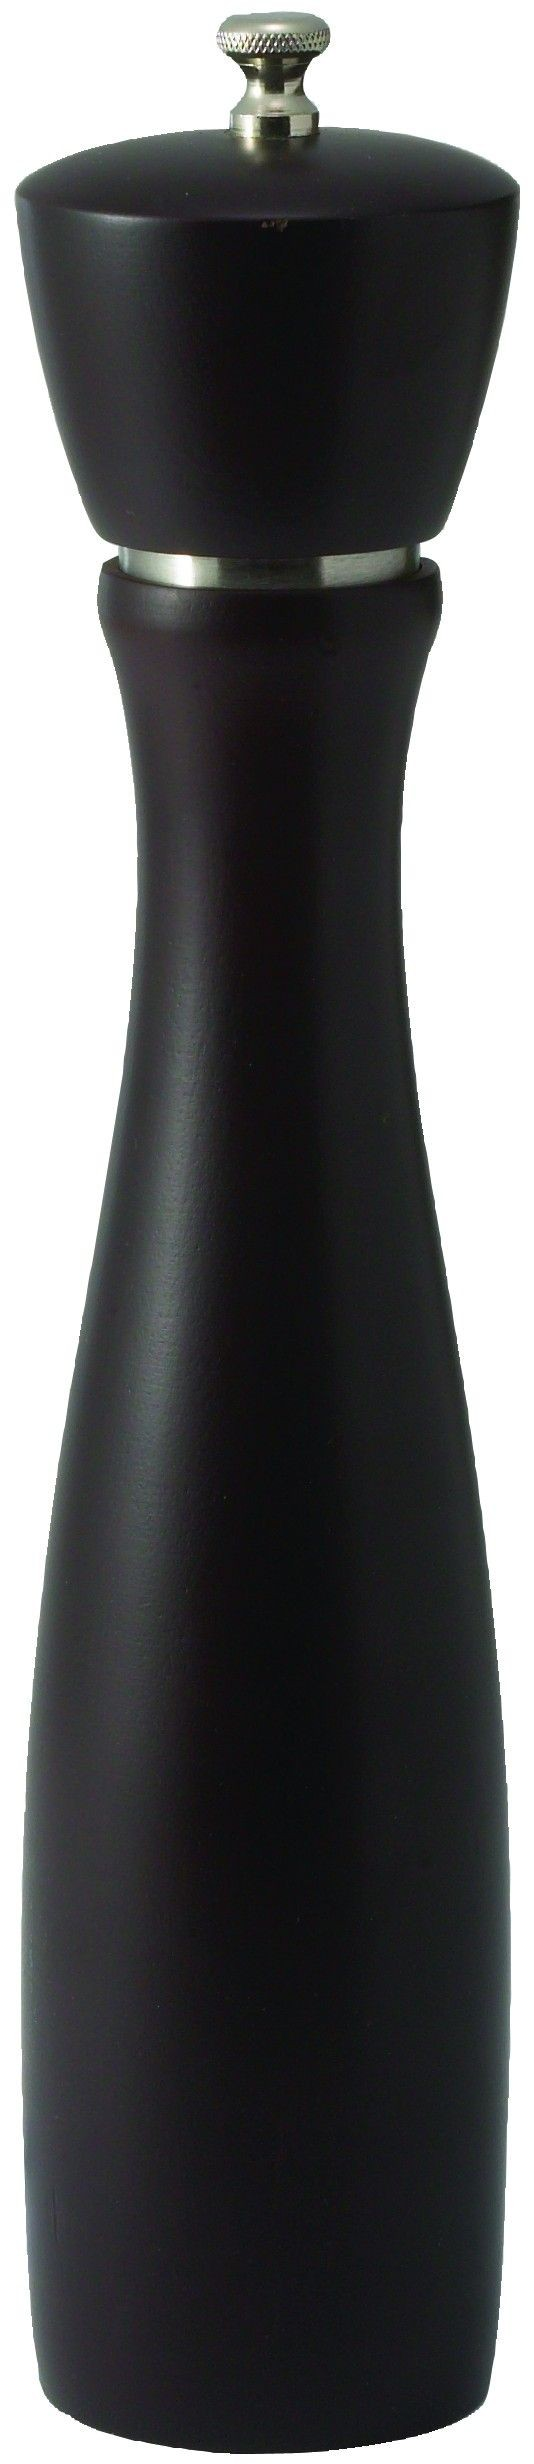 "Winco WPM-12CD Maestro Modern Pepper Mill 12""H"